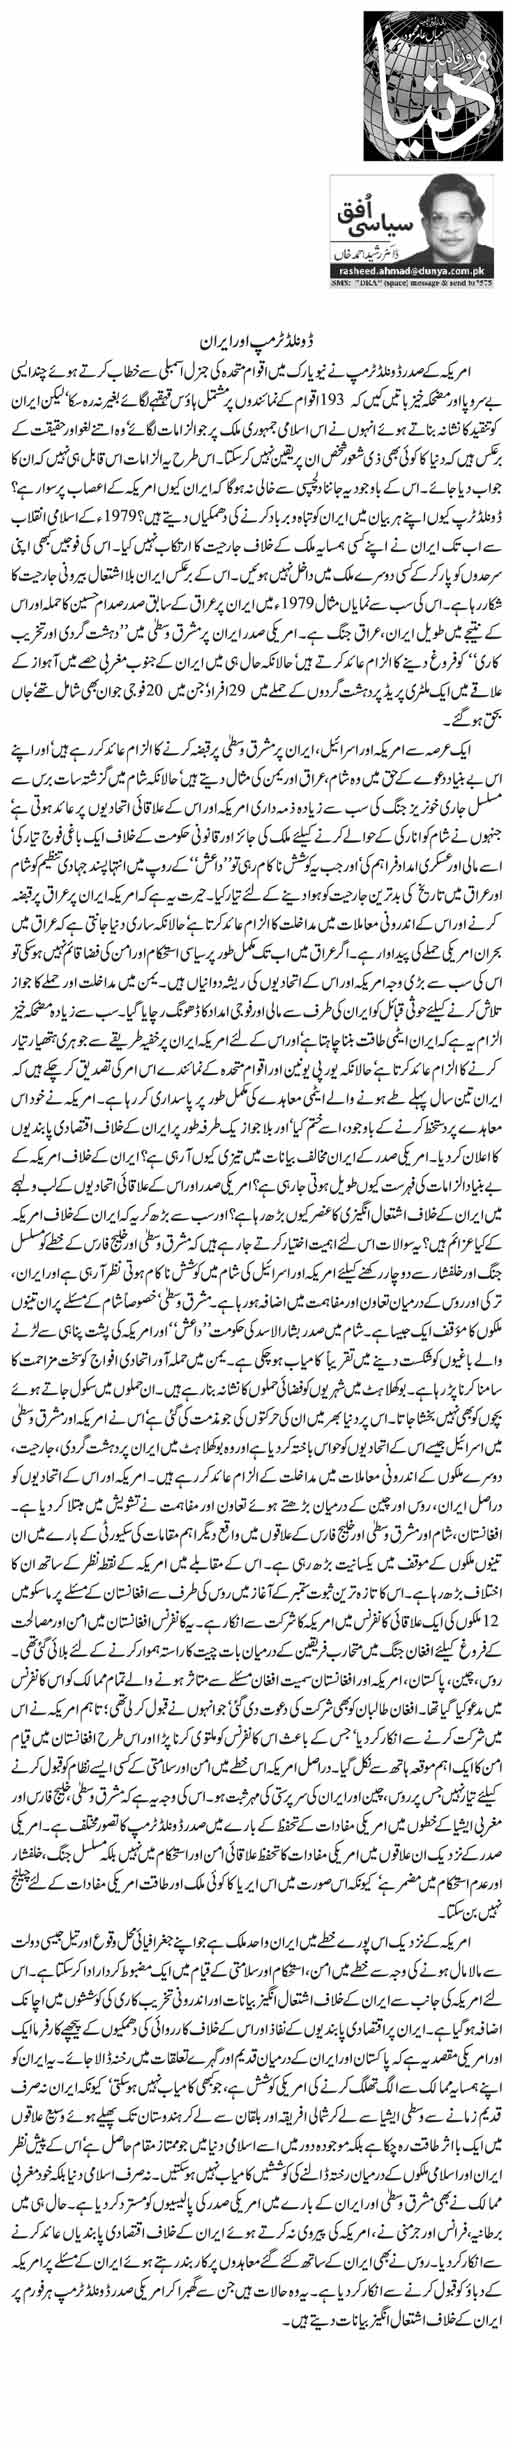 Donald Trump Aur Iran  Dr Rasheed Ahmad Khan  Daily